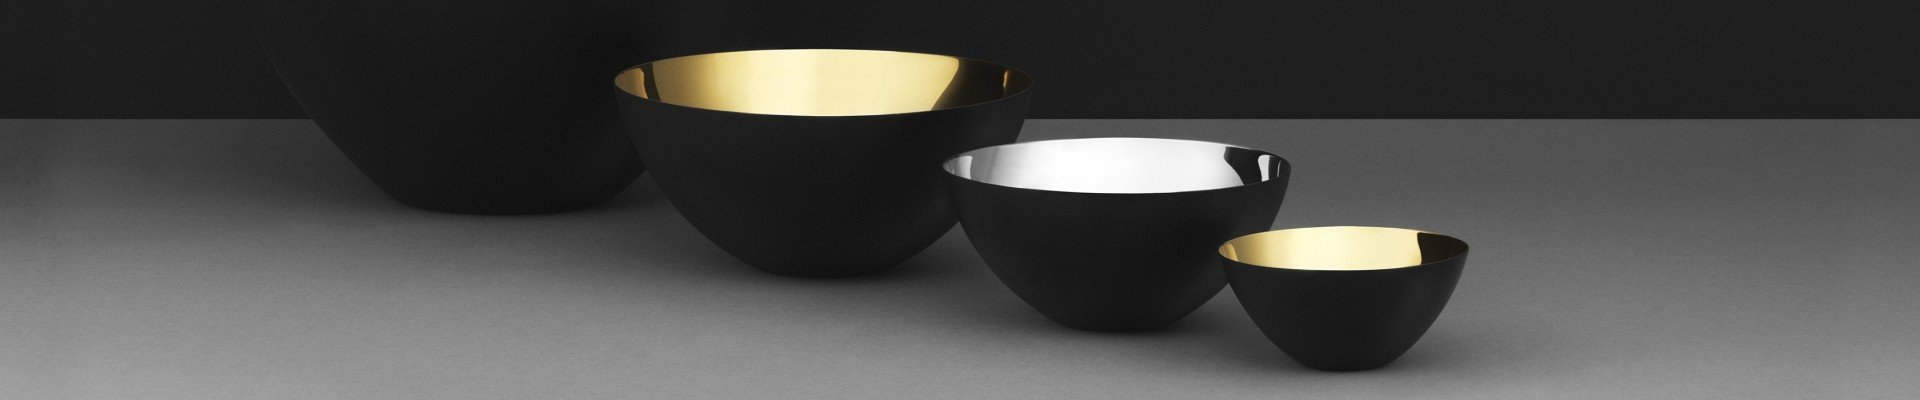 Normann Copenhagen Bowl